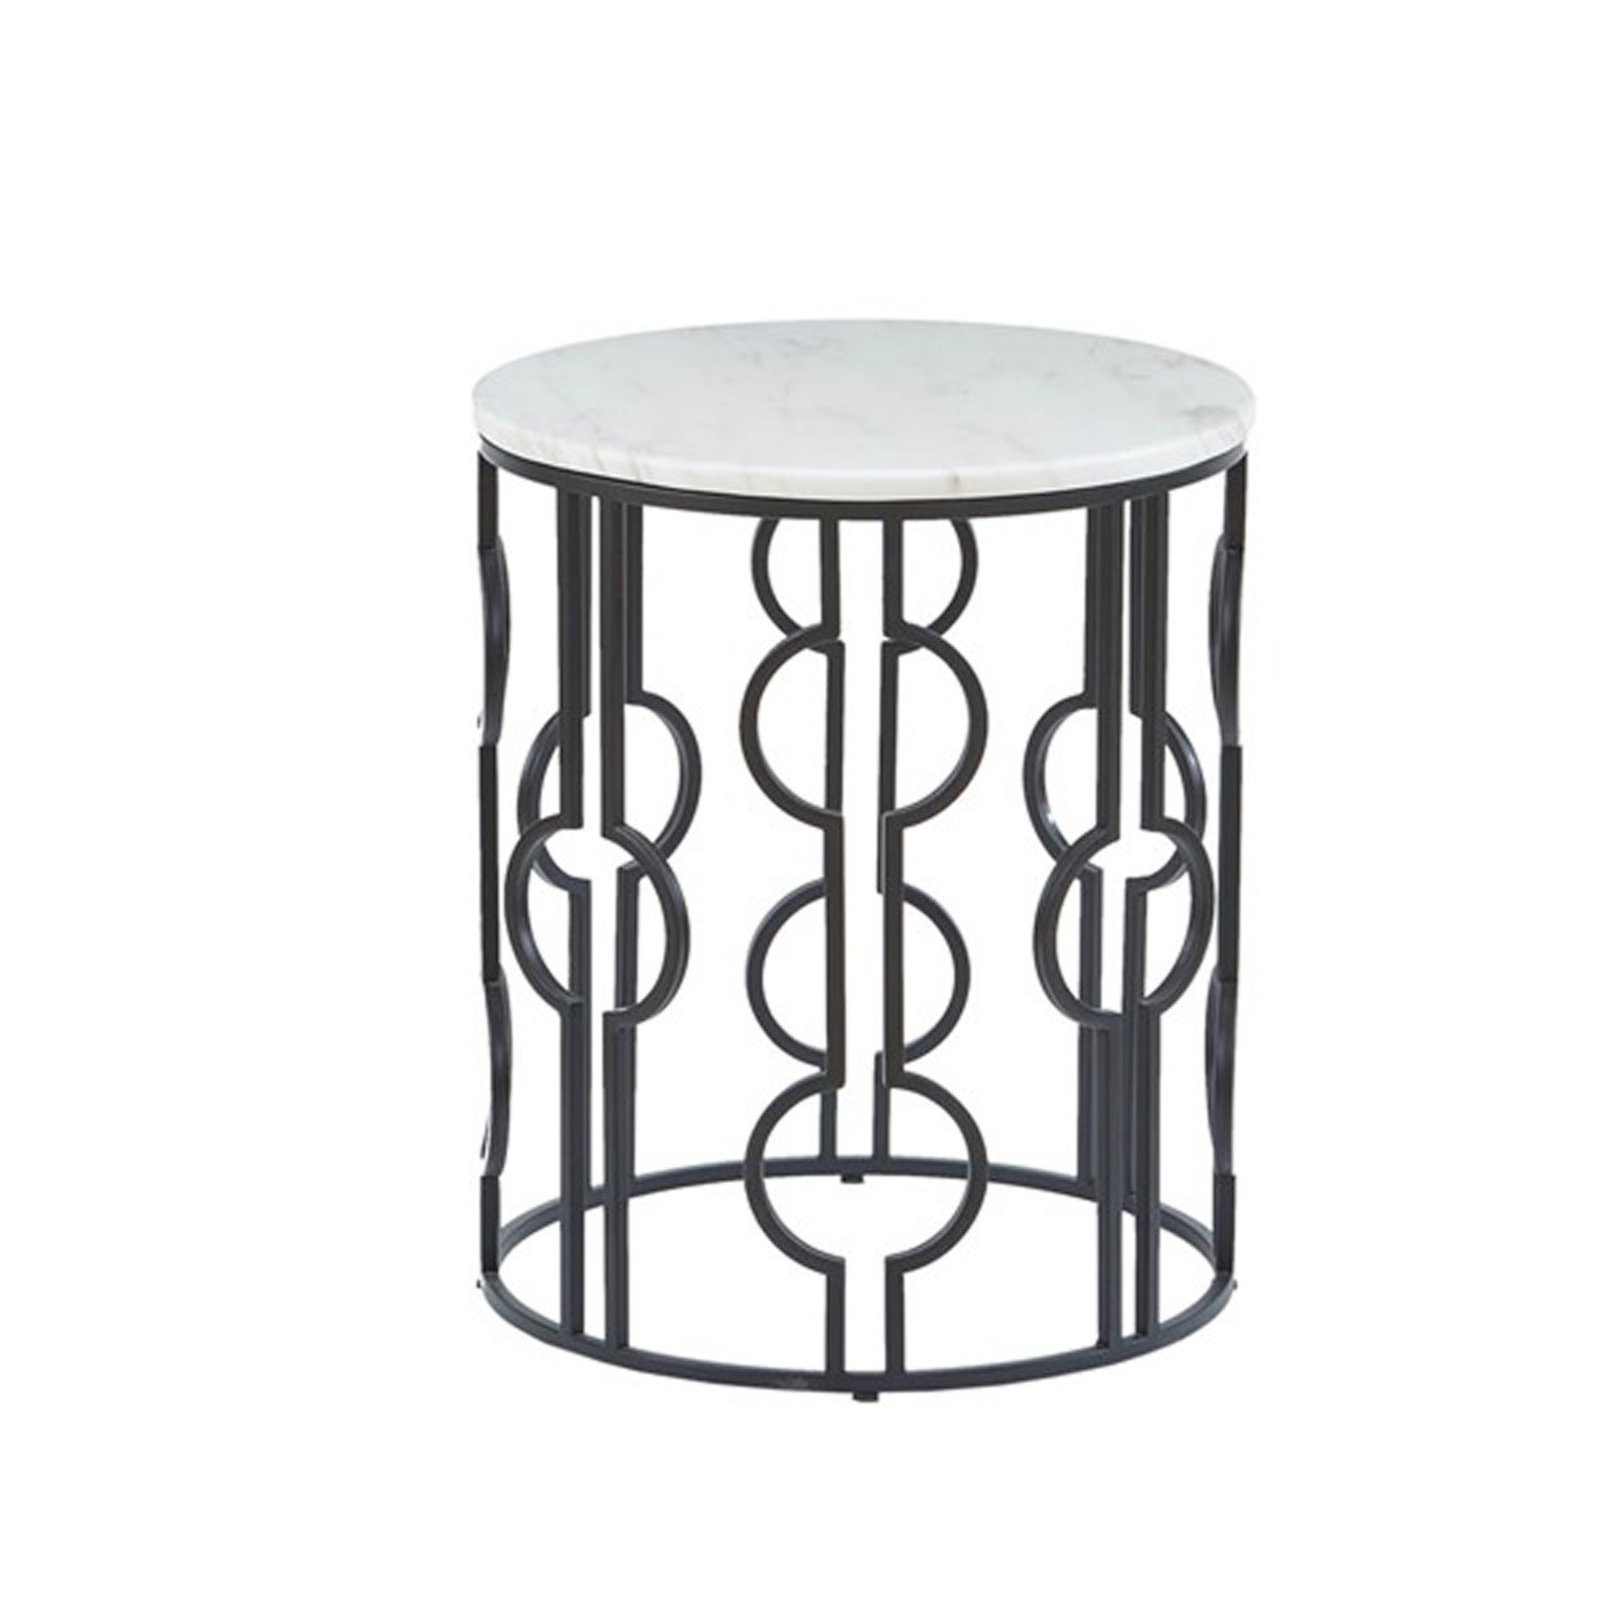 modern circular accent table shades light black and white marble jcpenney rugs clearance patio glass nightstands sets corner accents wine rack dining room outdoor chair set gold